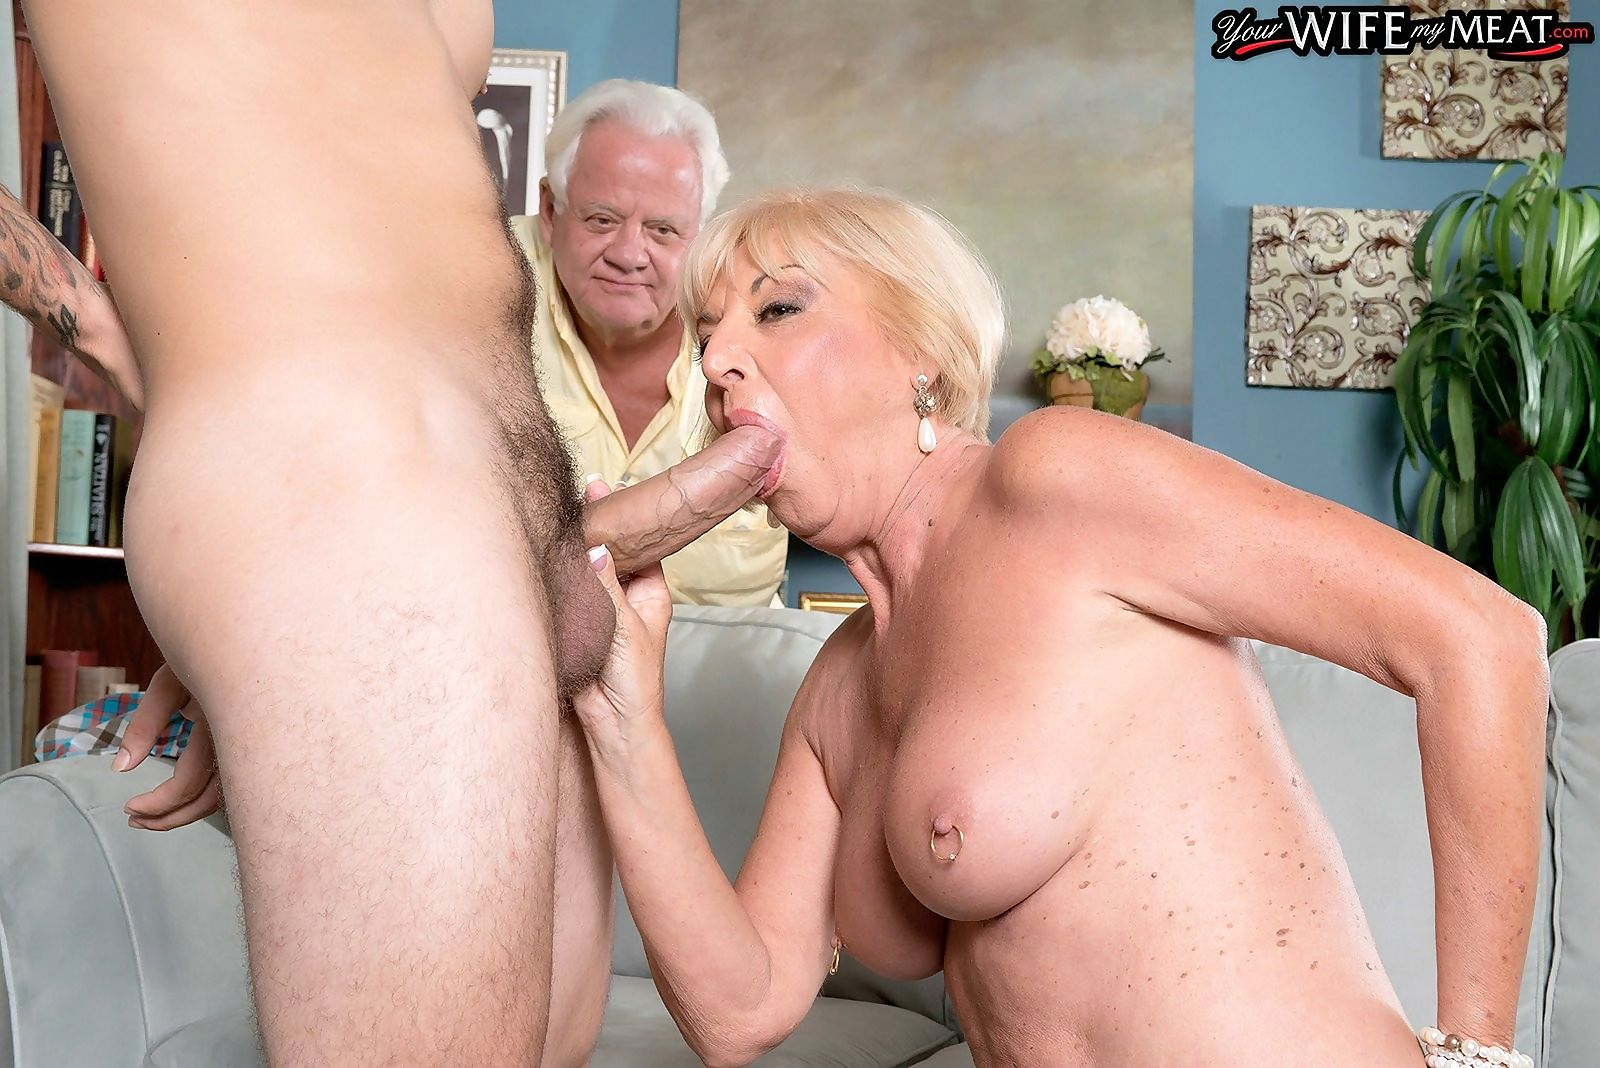 65yearold wife cuckolding her hubby in live sex show - part 3144